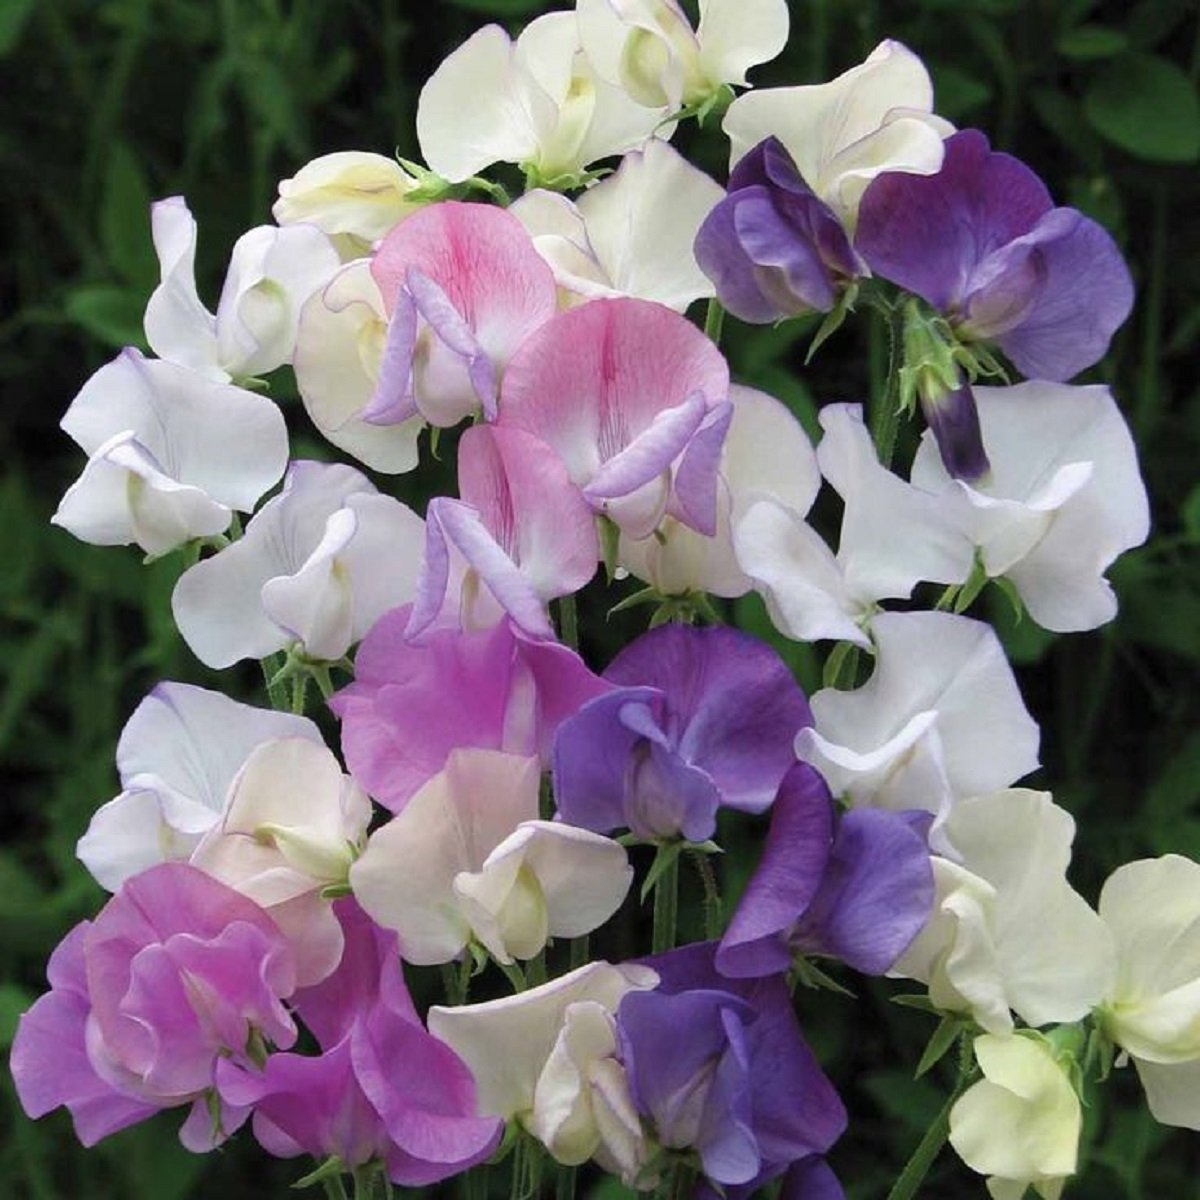 FREE S/&H IN USA FOR CANDLE /& SOAP MAKING BY VIRGINIA CANDLE SUPPLY SWEET PEA VERBENA FRAGRANCE OIL 8 OZ